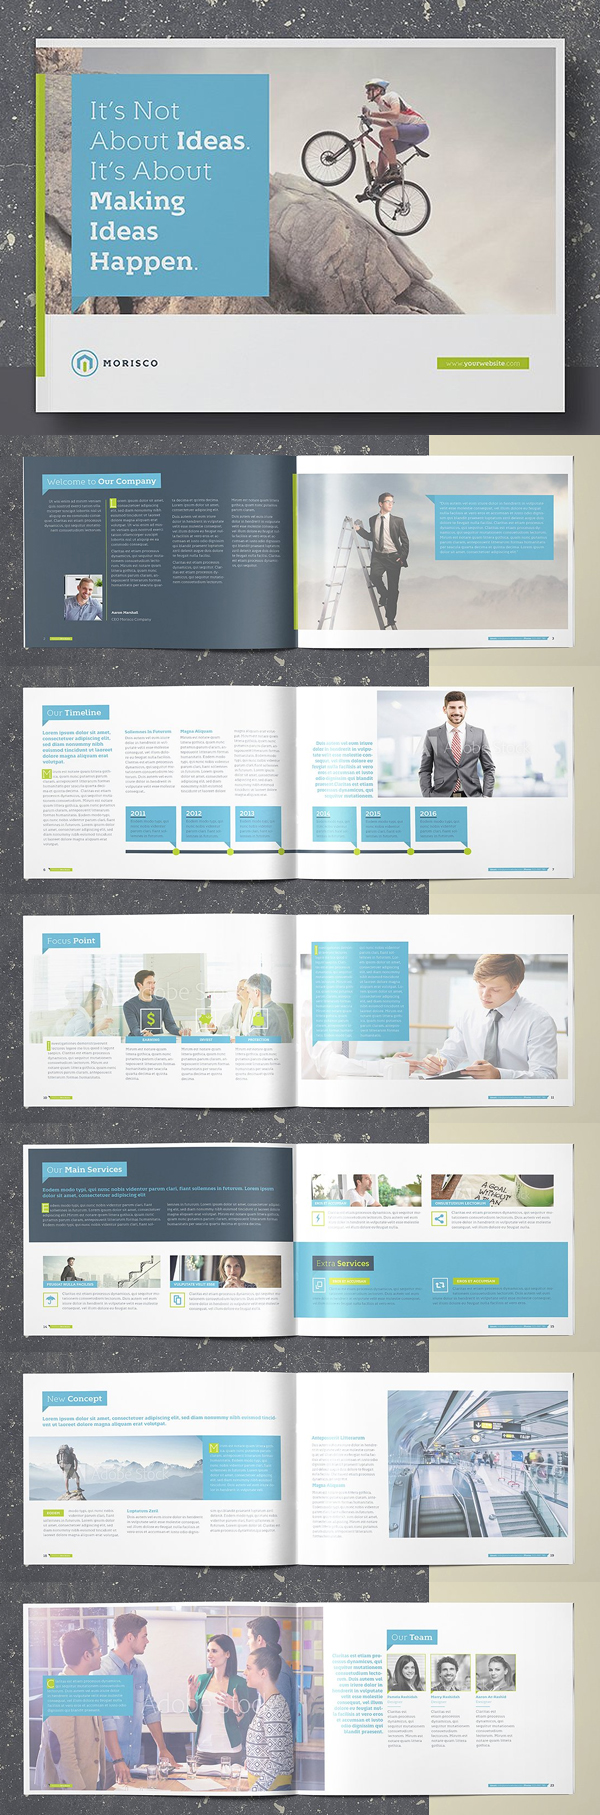 100 Professional Corporate Brochure Templates - 27